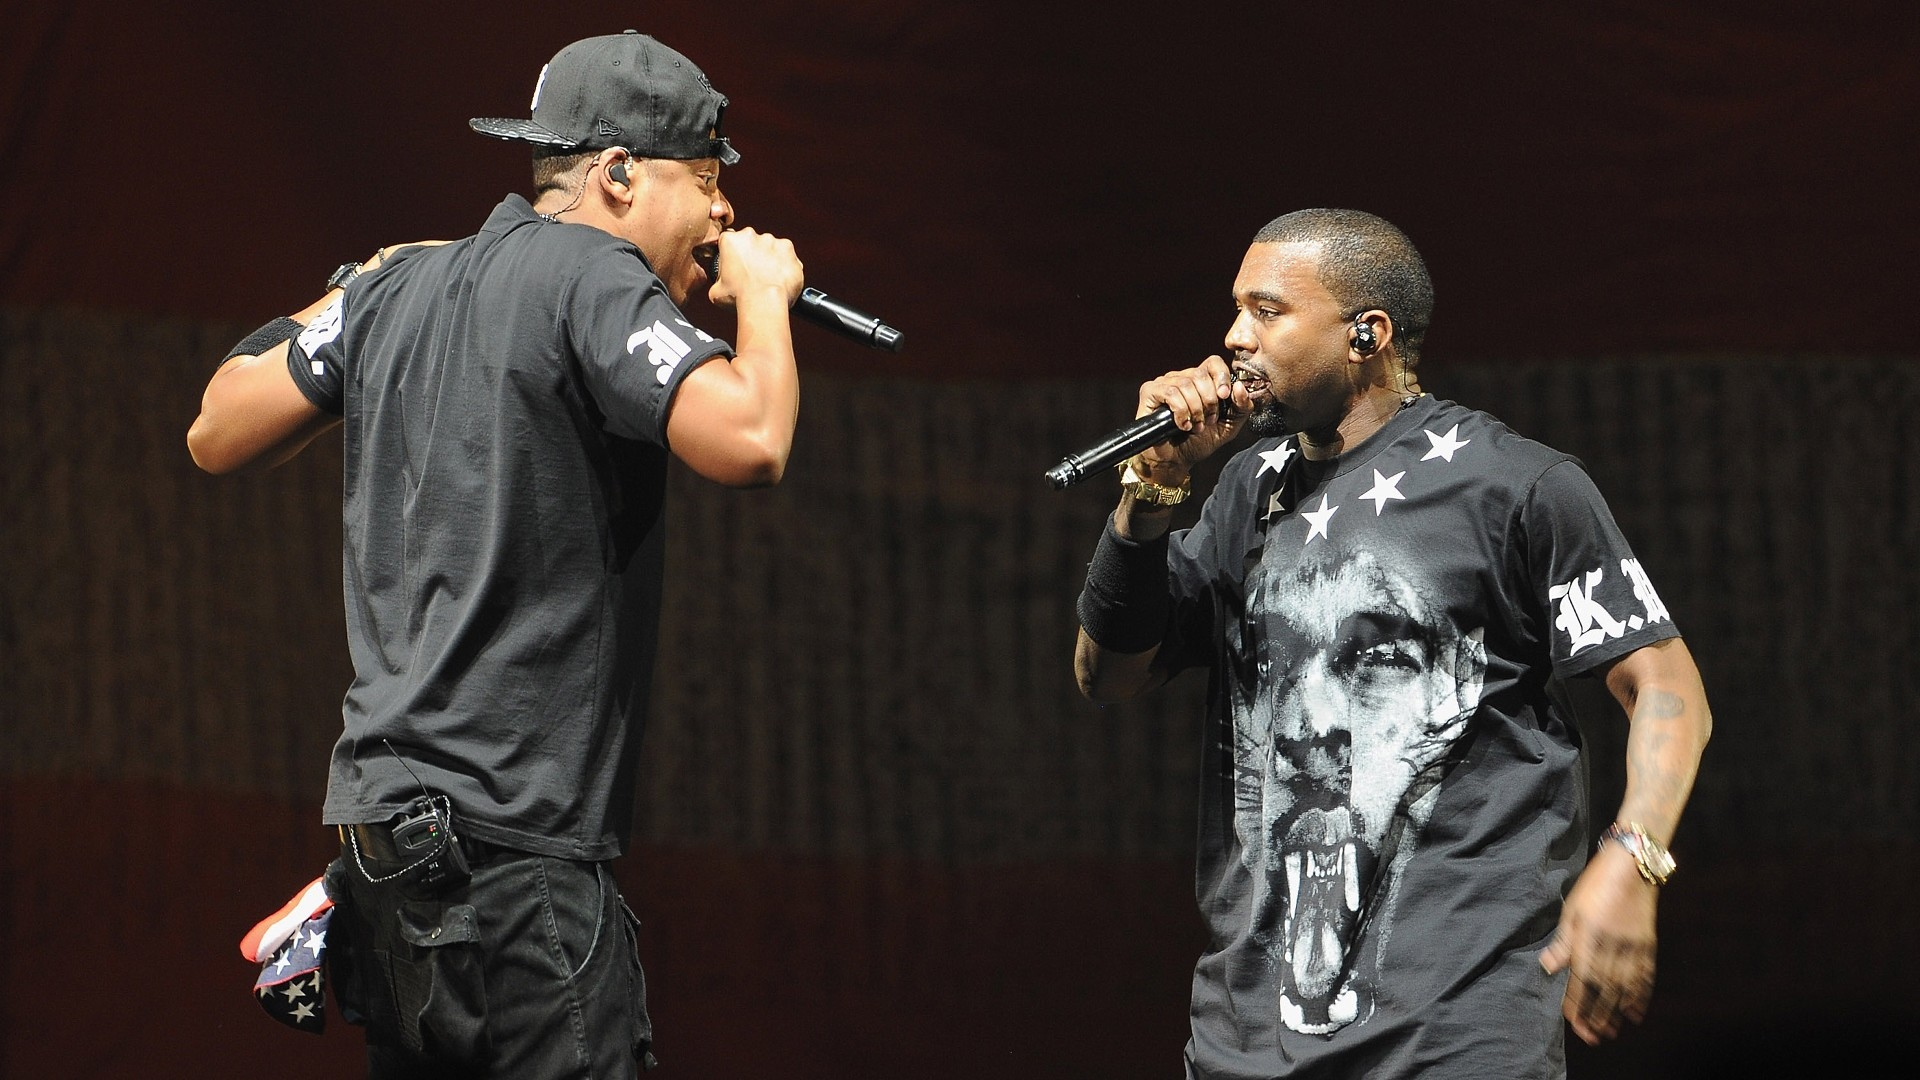 Jay Z & Kanye West backdrop wallpaper